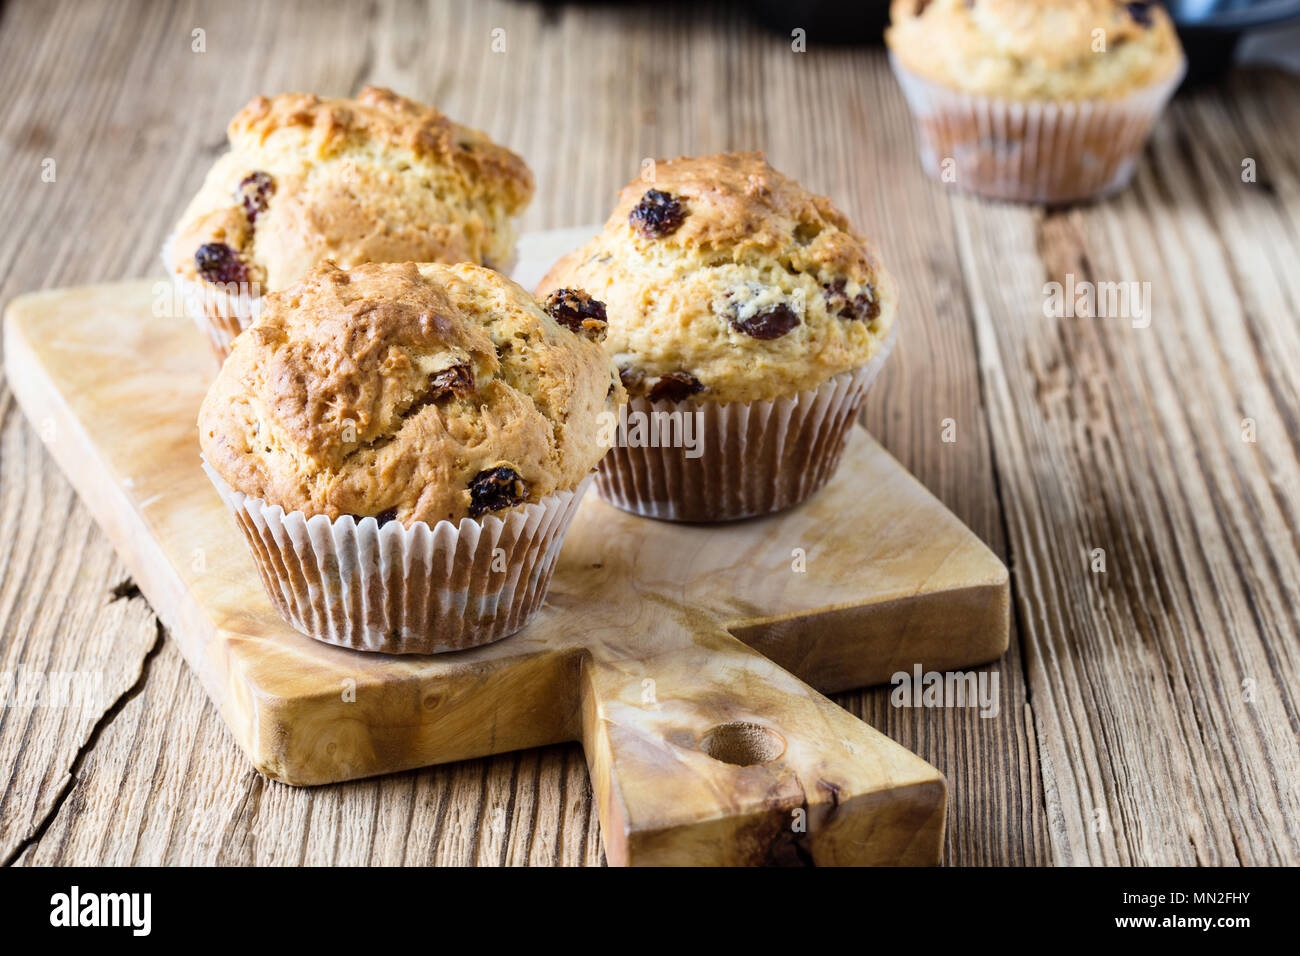 Breakfast cornmeal muffins with raisins, traditional american home baking Stock Photo